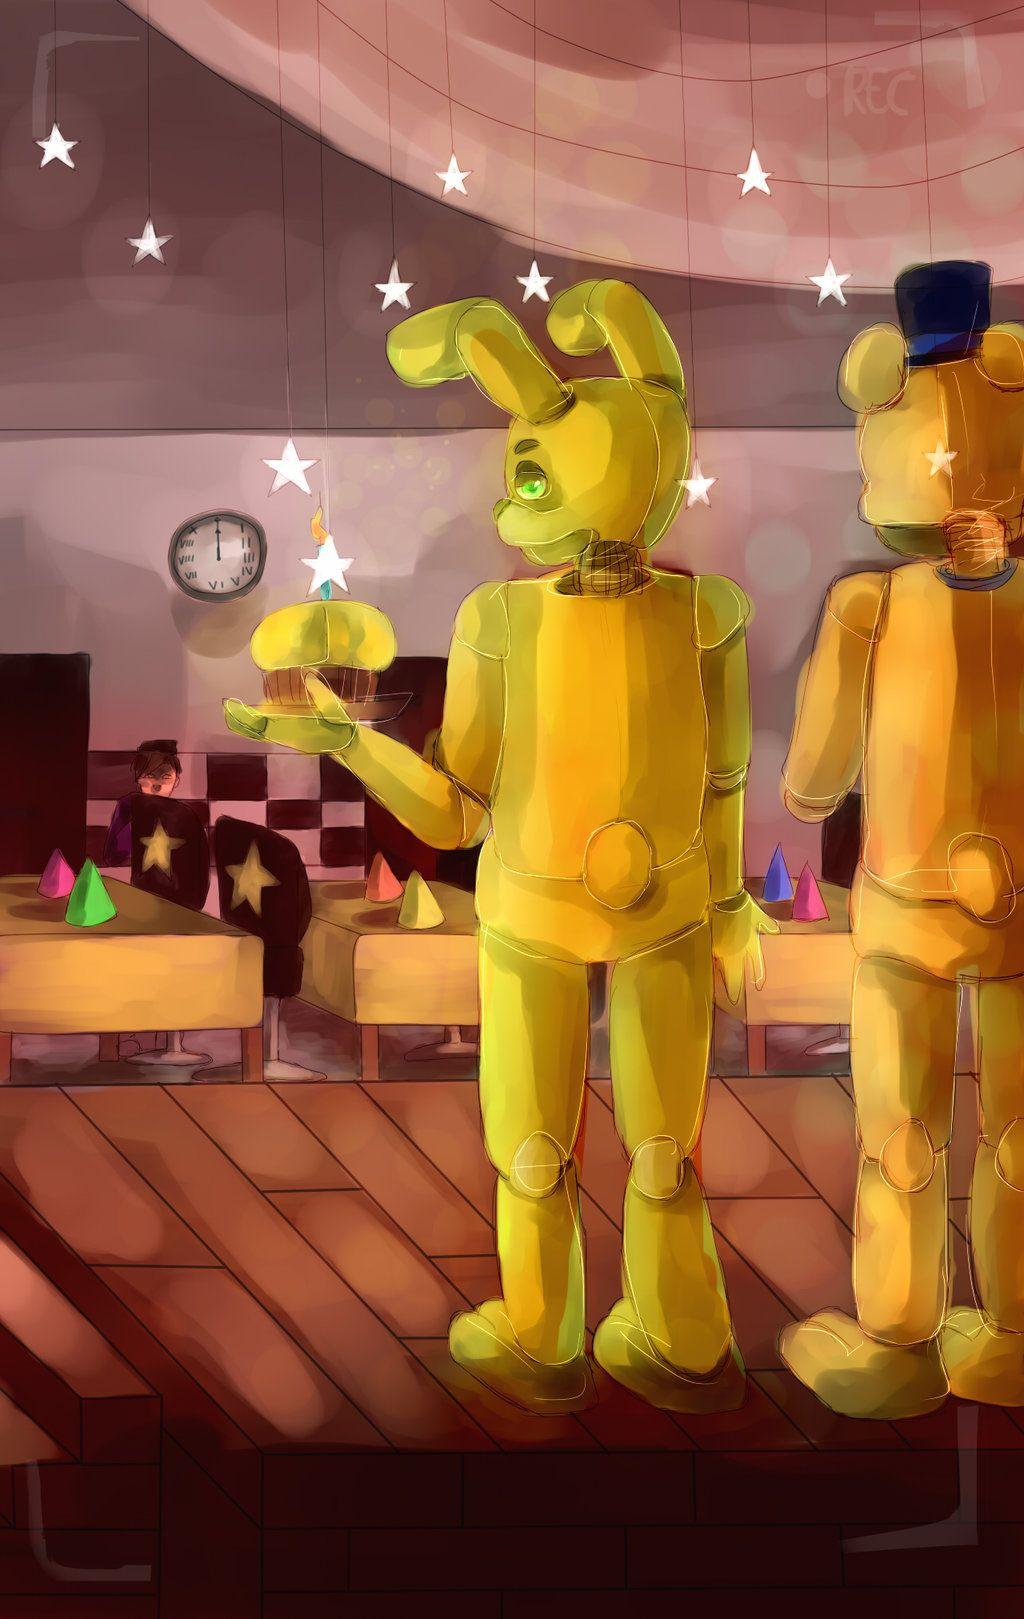 Fredbears family diner demo play now - Fredbear Family Dinner Stage By Mikymichelle Deviantart Com On Deviantart